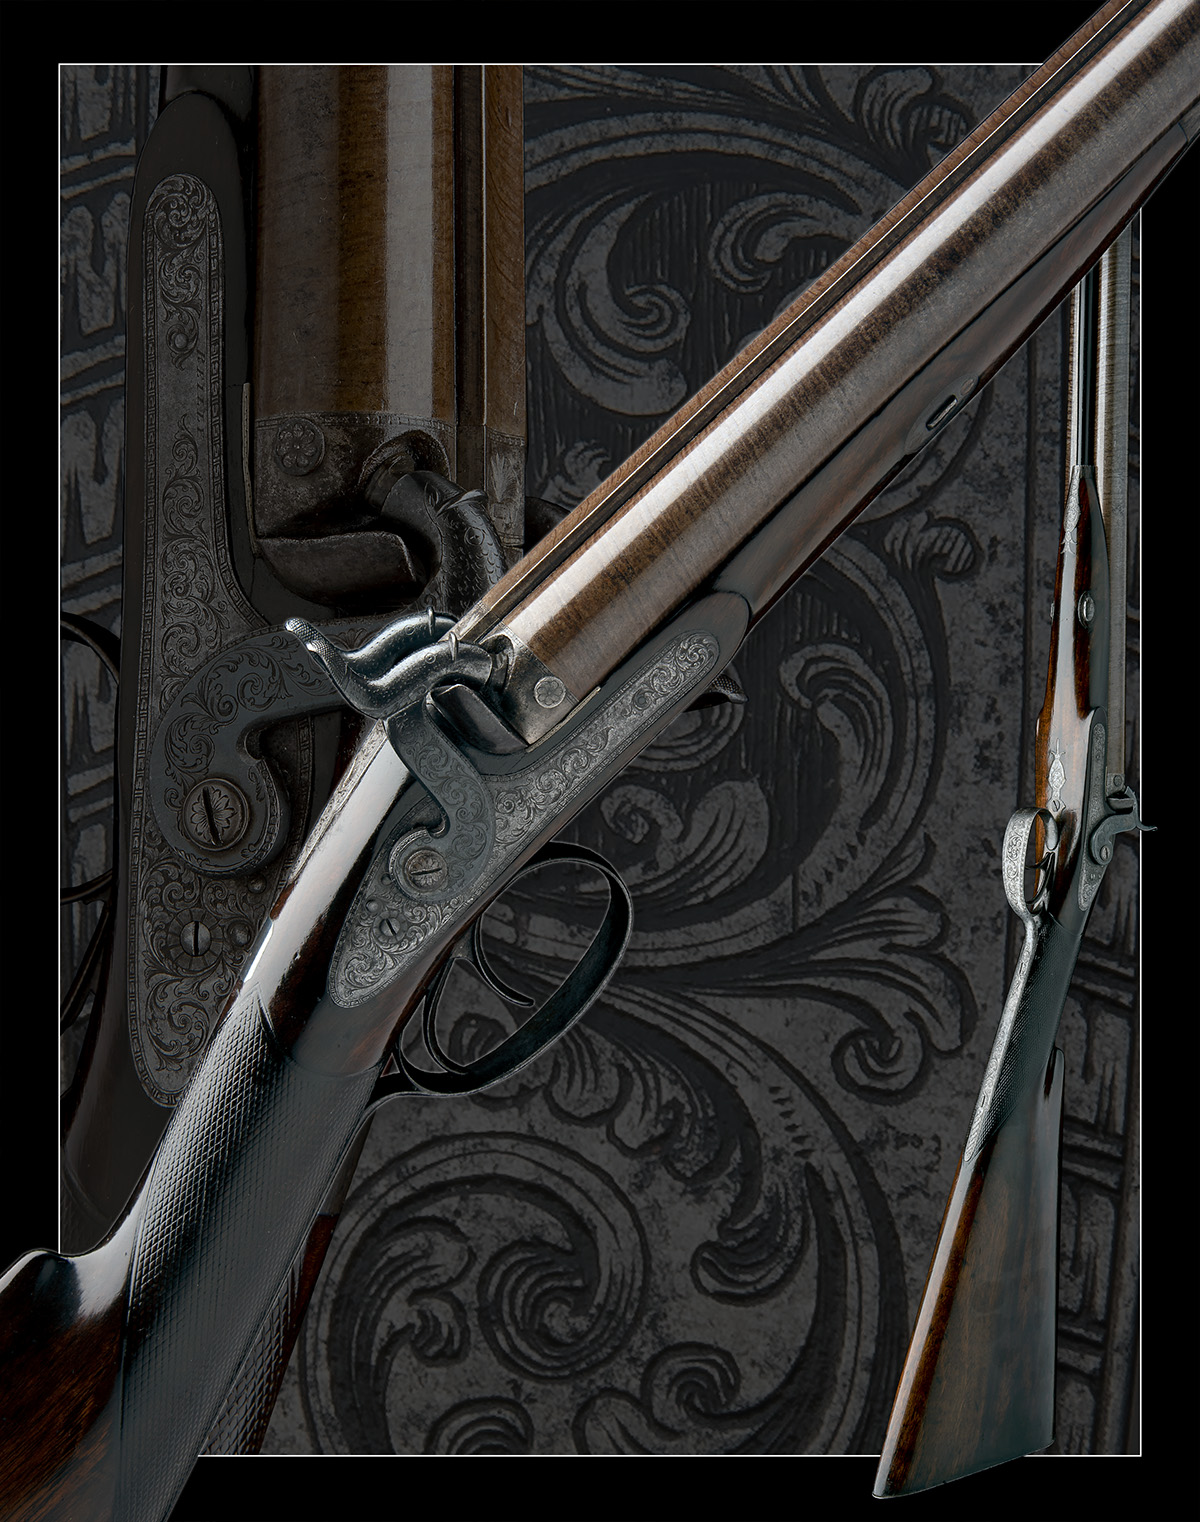 J.C. REILLY, LONDON A GOOD 12-BORE PERCUSSION DOUBLE-BARRELLED SPORTING-GUN, serial no 5580, for - Image 11 of 11